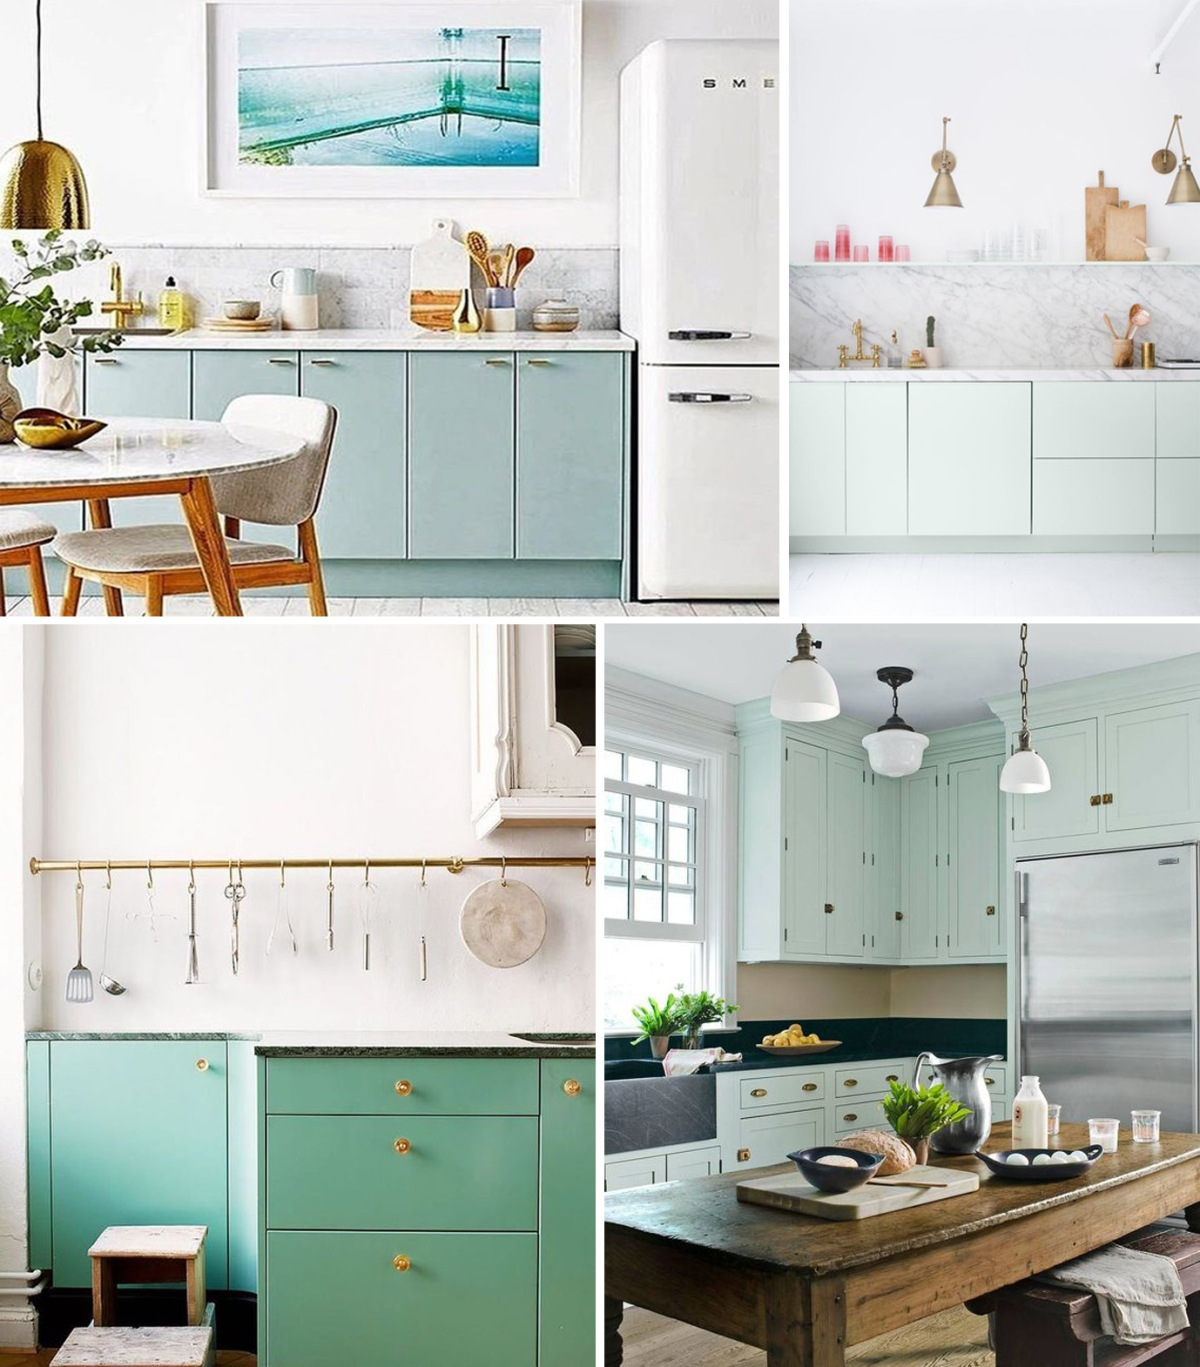 Mint Green Kitchen: Bringing Color Into The Kitchen